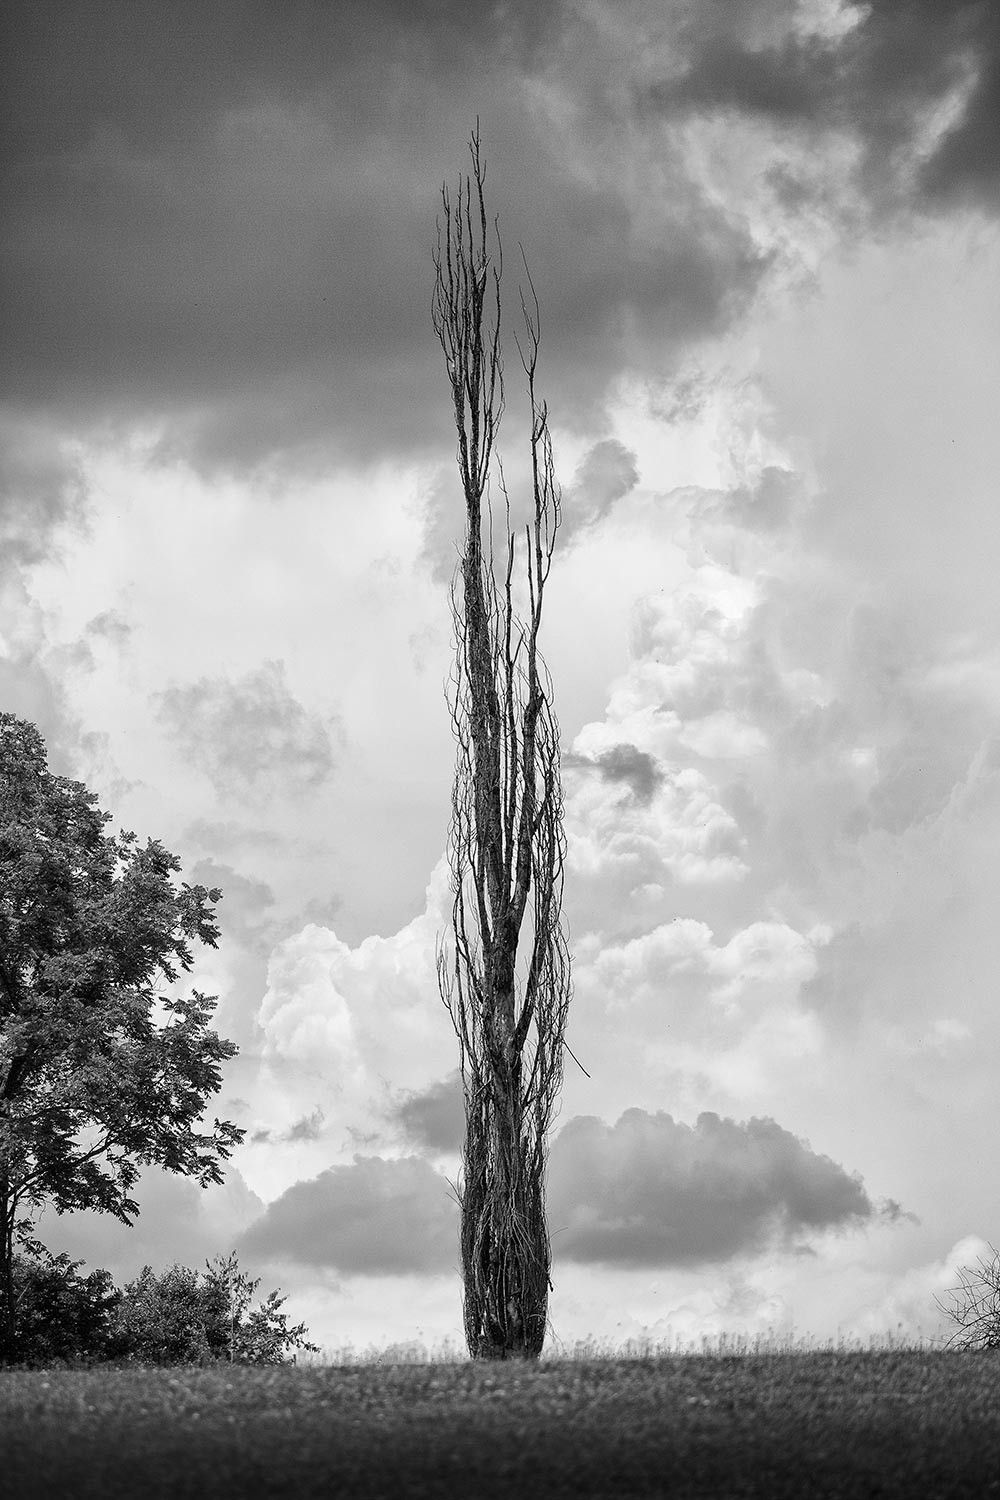 Tall Tree And Stormy Sky Landscape Photograph A0020178 Landscape Photography Landscape Photography Tutorial Landscape